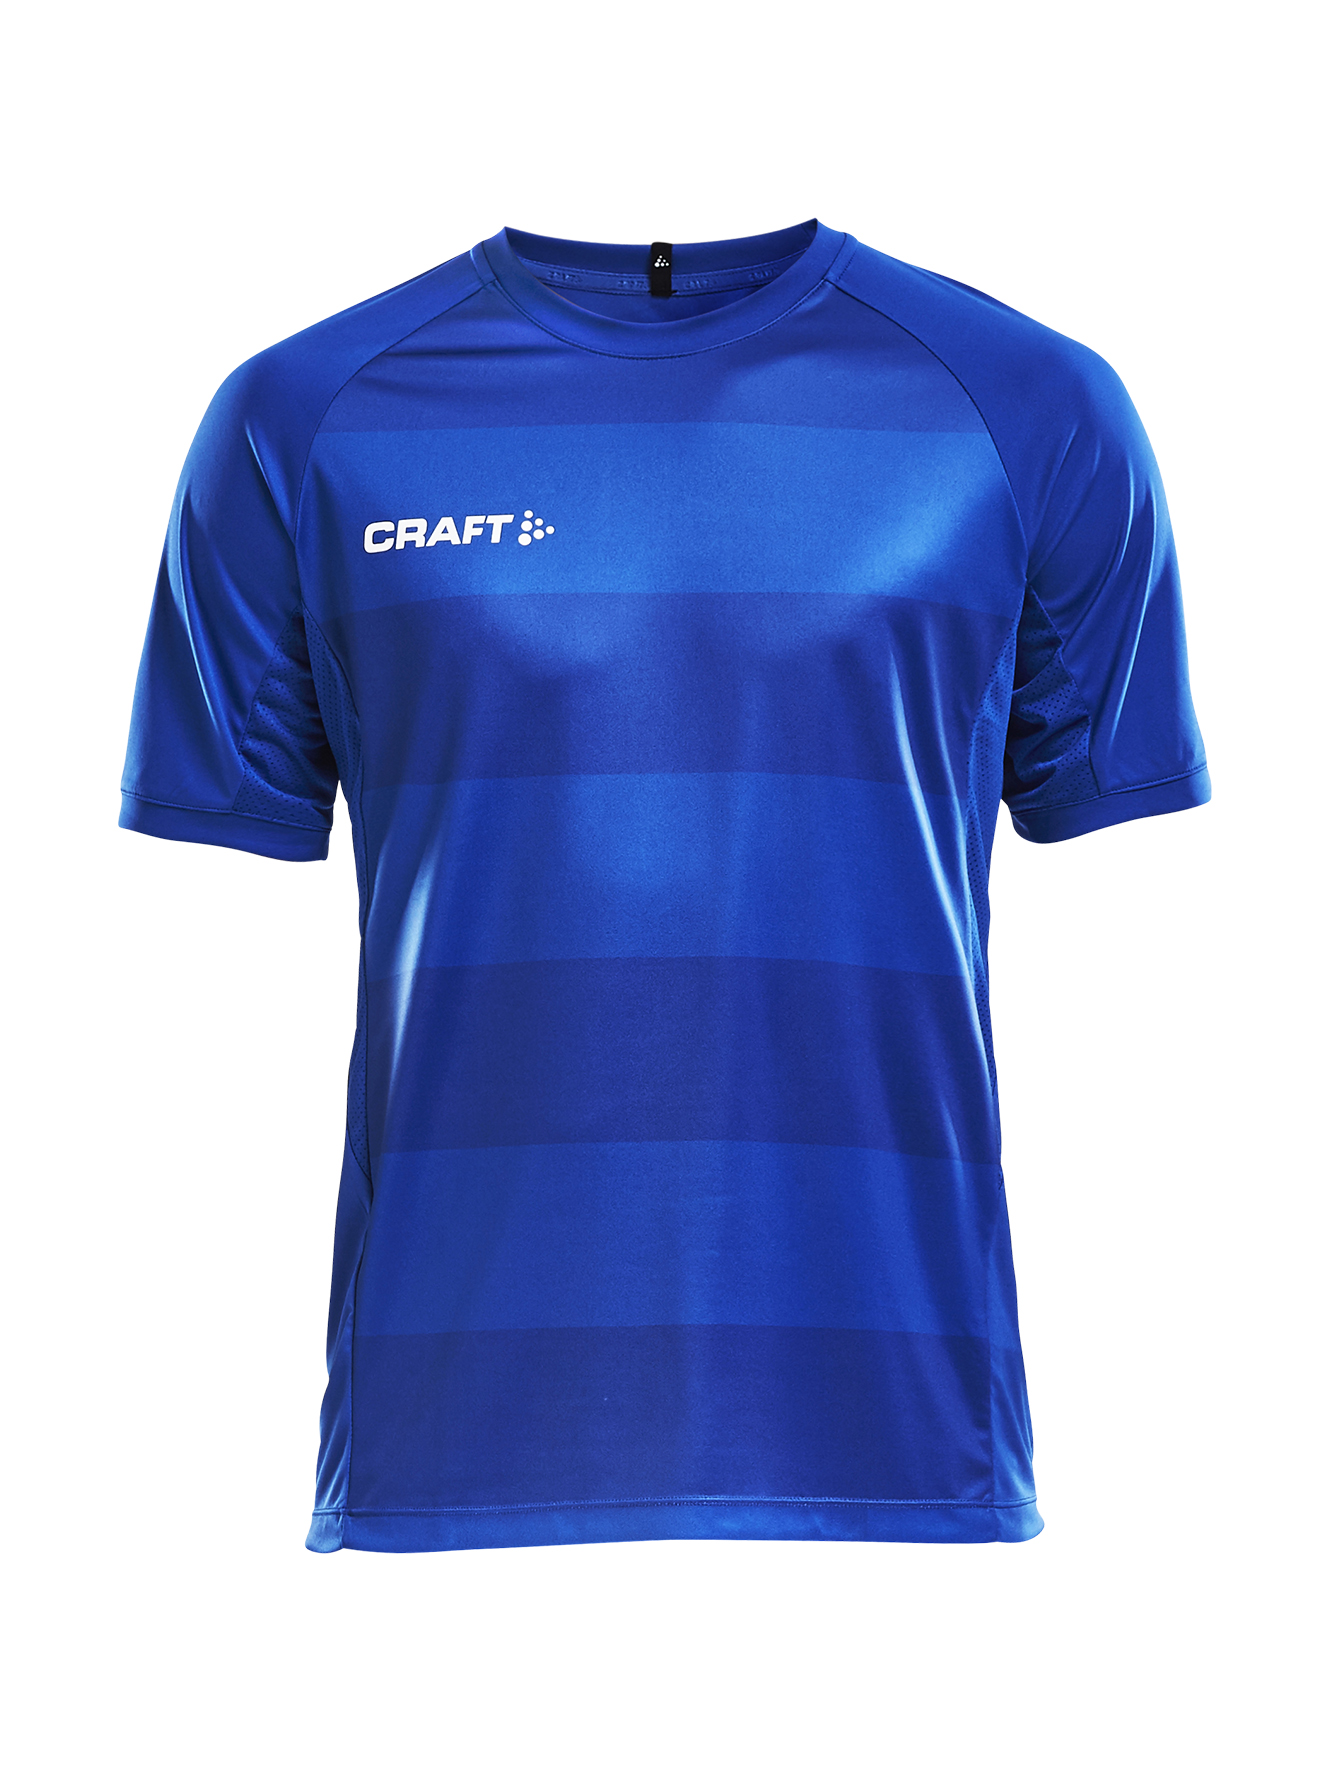 Craft PROGRESS Jersey Graphic Men ROYAL BLUE (TONE IN TONE)